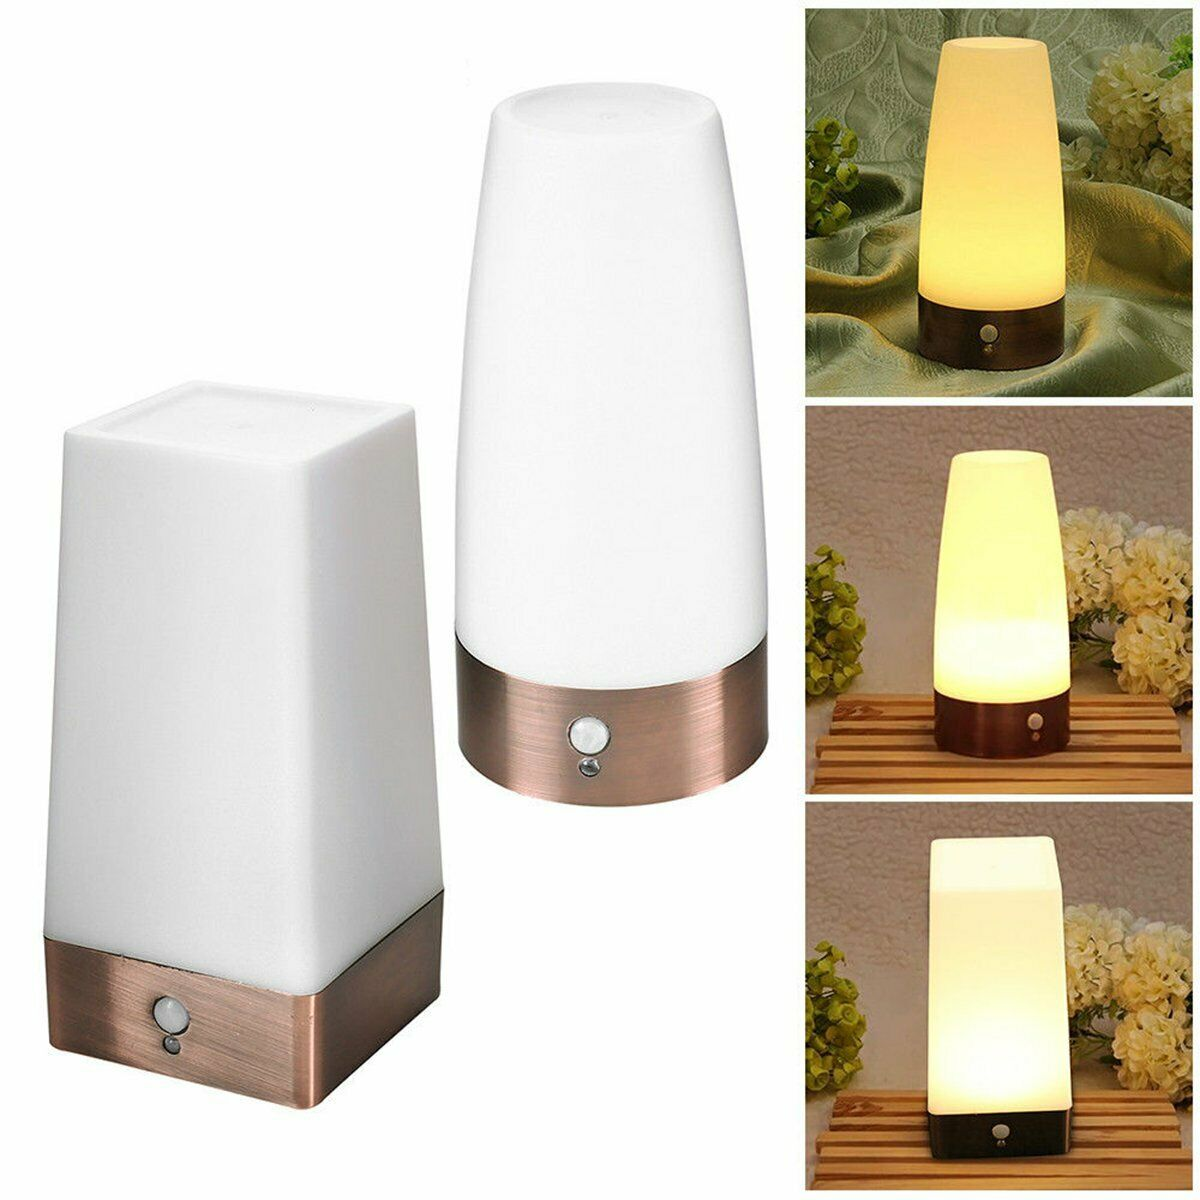 PIR Wireless Led Motion Sensor Retro Bedroom Night Light Battery Powered LED Table Lamp Nightlight